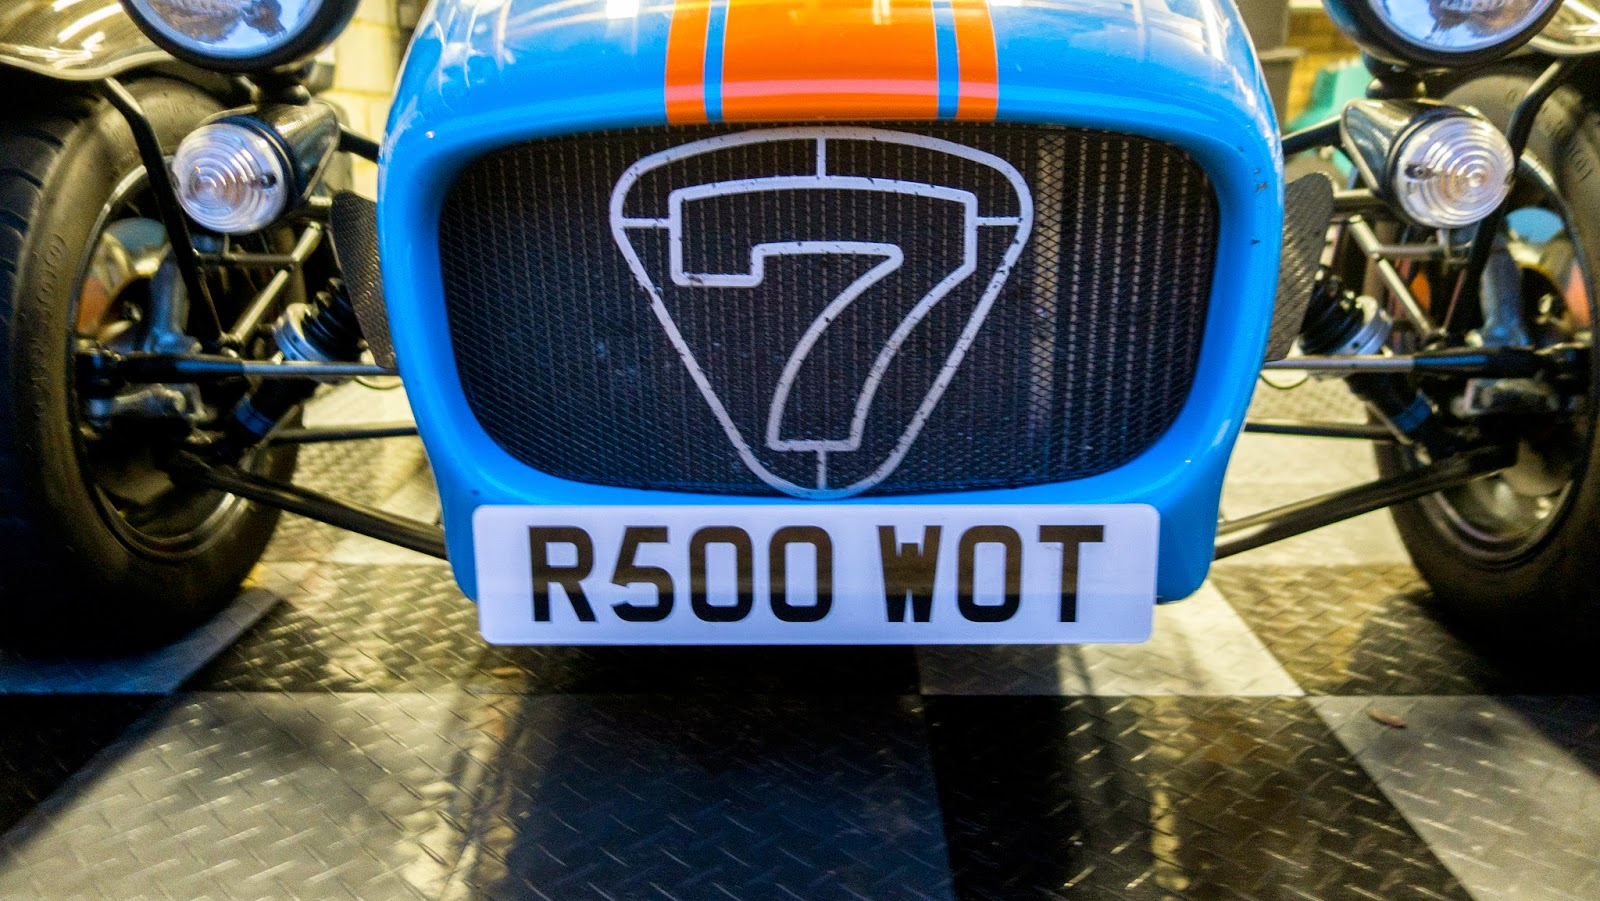 R500 WOT 'show' number plate